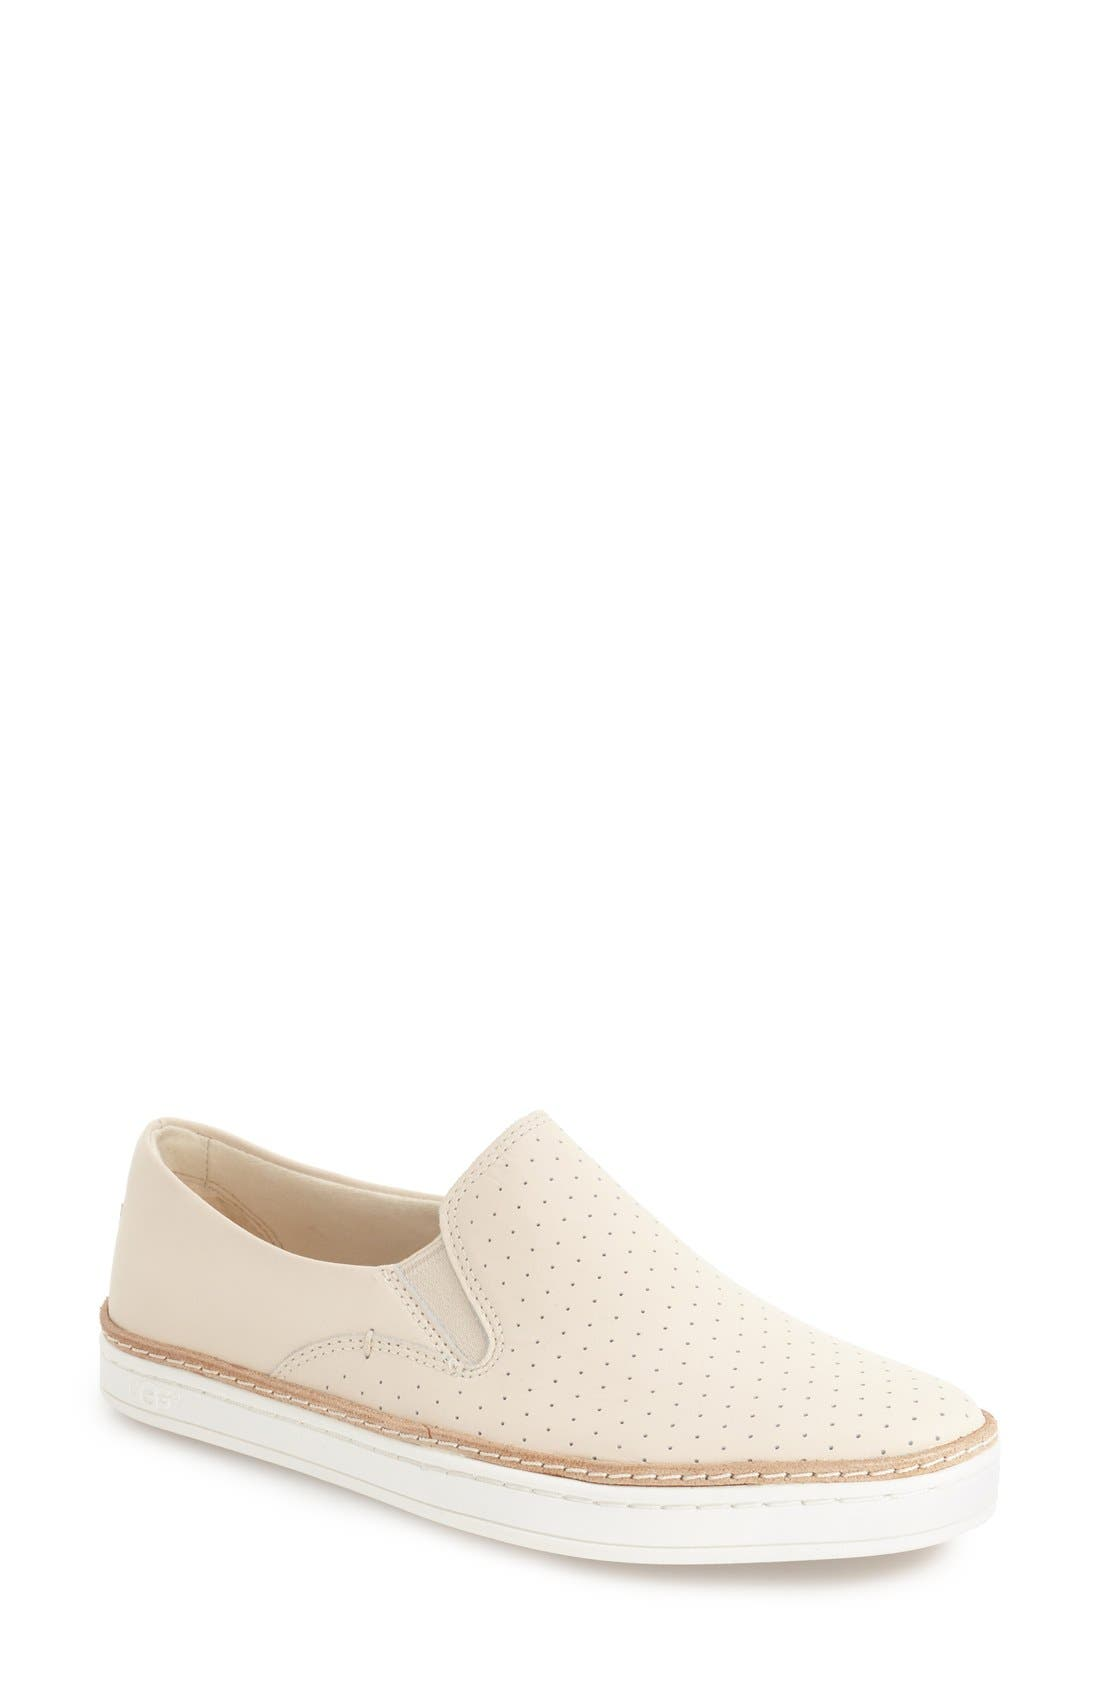 Main Image - UGG® 'Keile' Perforated Sneaker (Women)